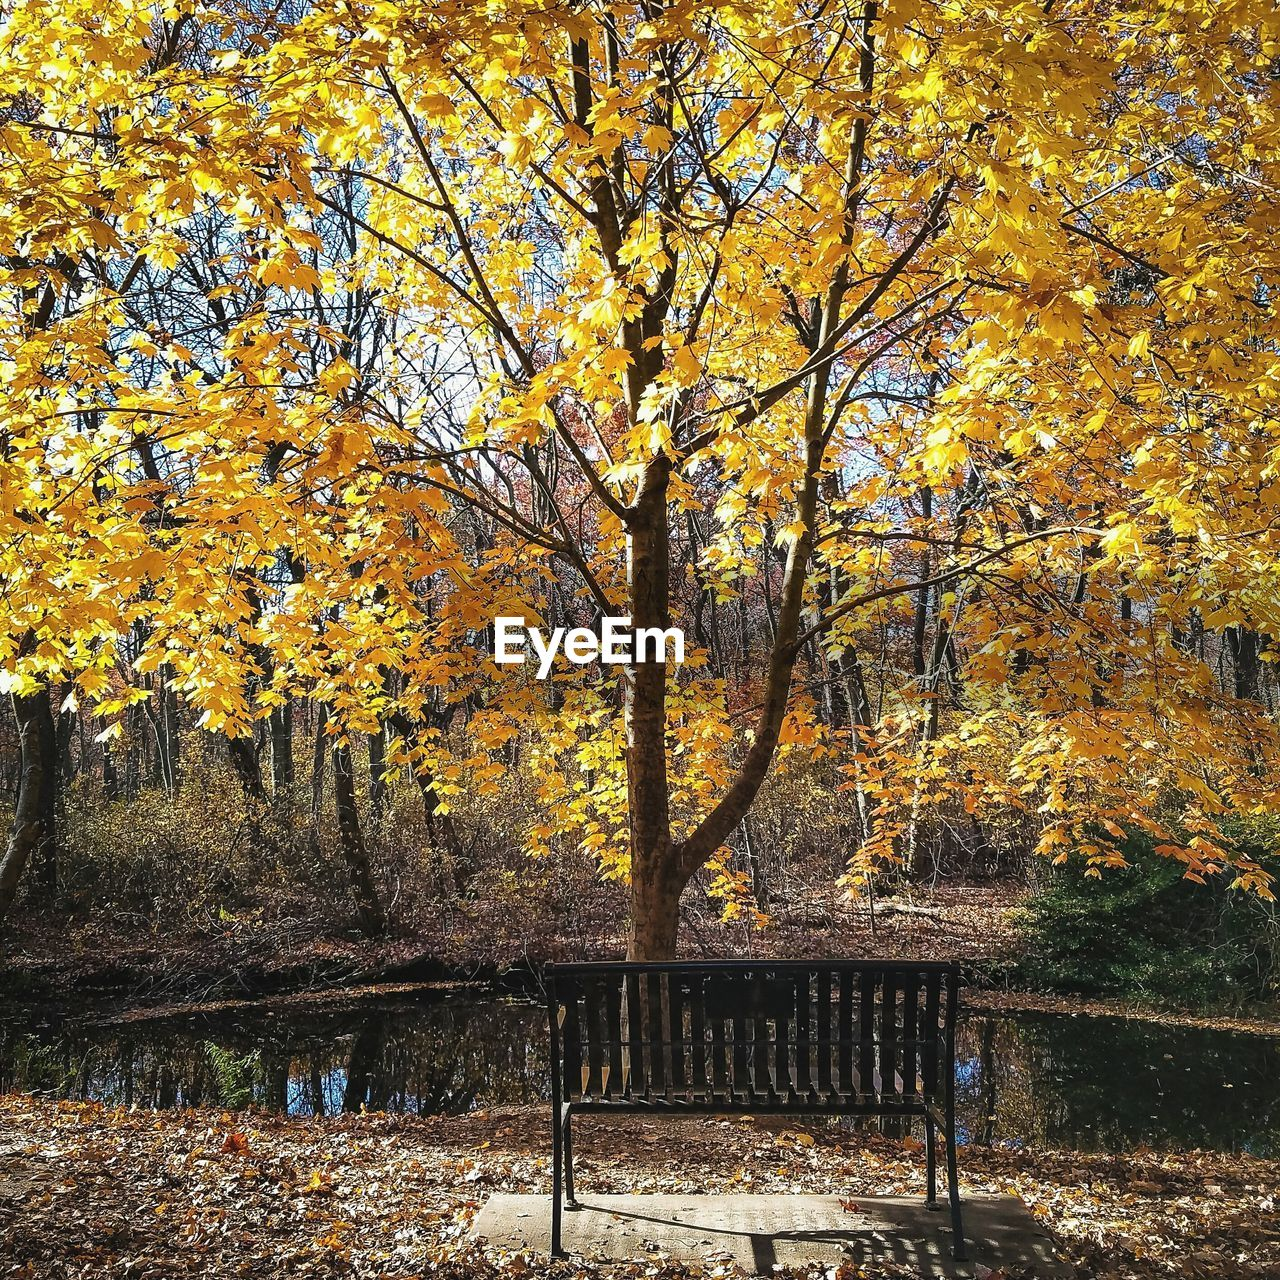 autumn, leaf, change, tree, nature, beauty in nature, park - man made space, tranquility, maple tree, scenics, tranquil scene, outdoors, branch, day, maple, maple leaf, no people, growth, yellow